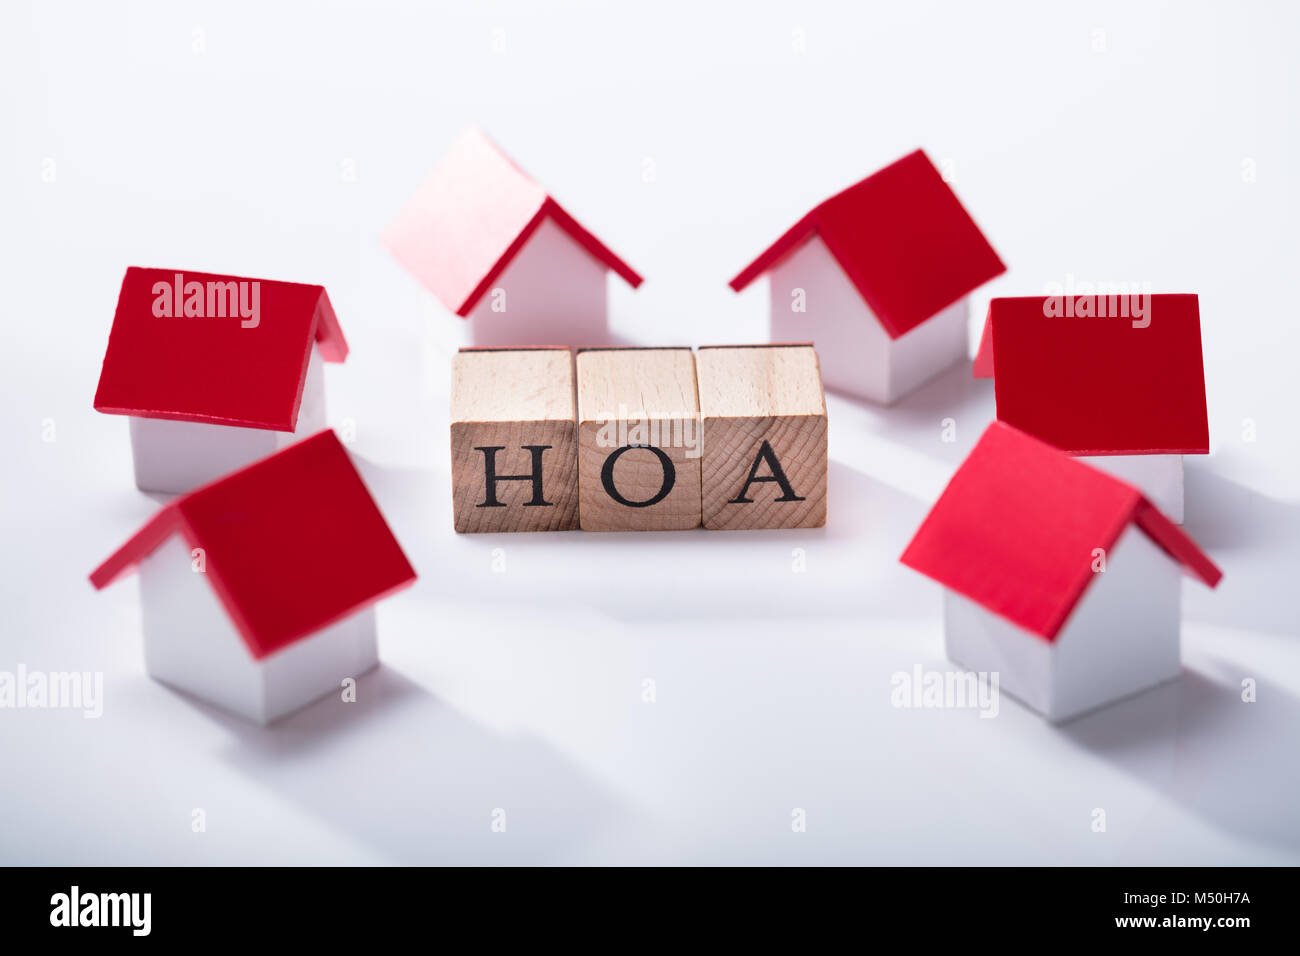 Homeowner Association Wooden Blocks Surrounded With Miniature House Models Over The White Background - Stock Image